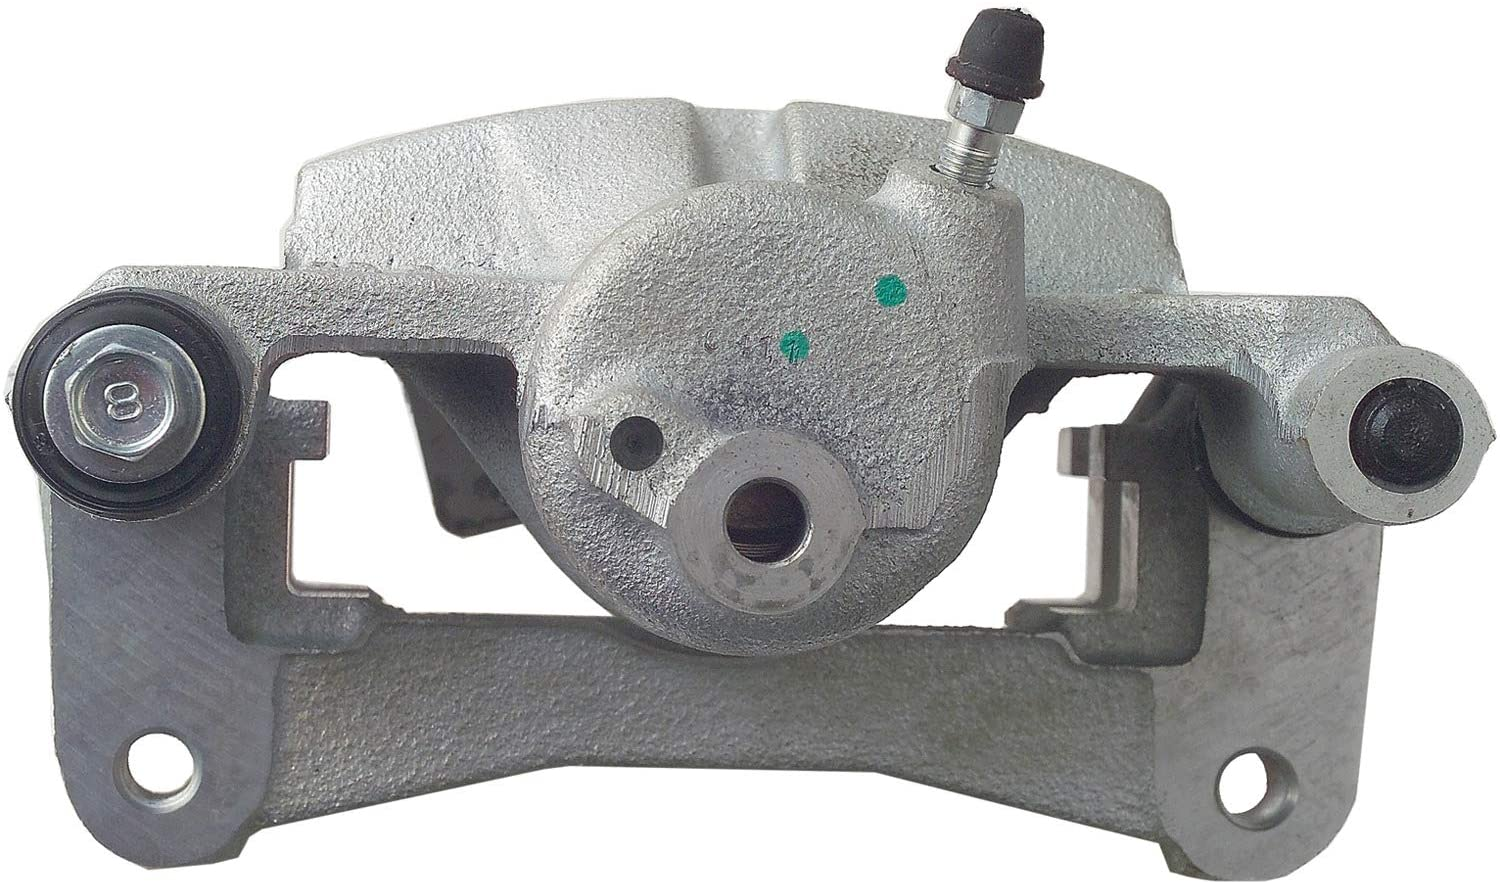 Cardone 19-B1779A Remanufactured Import Friction Ready (Unloaded) Brake Caliper